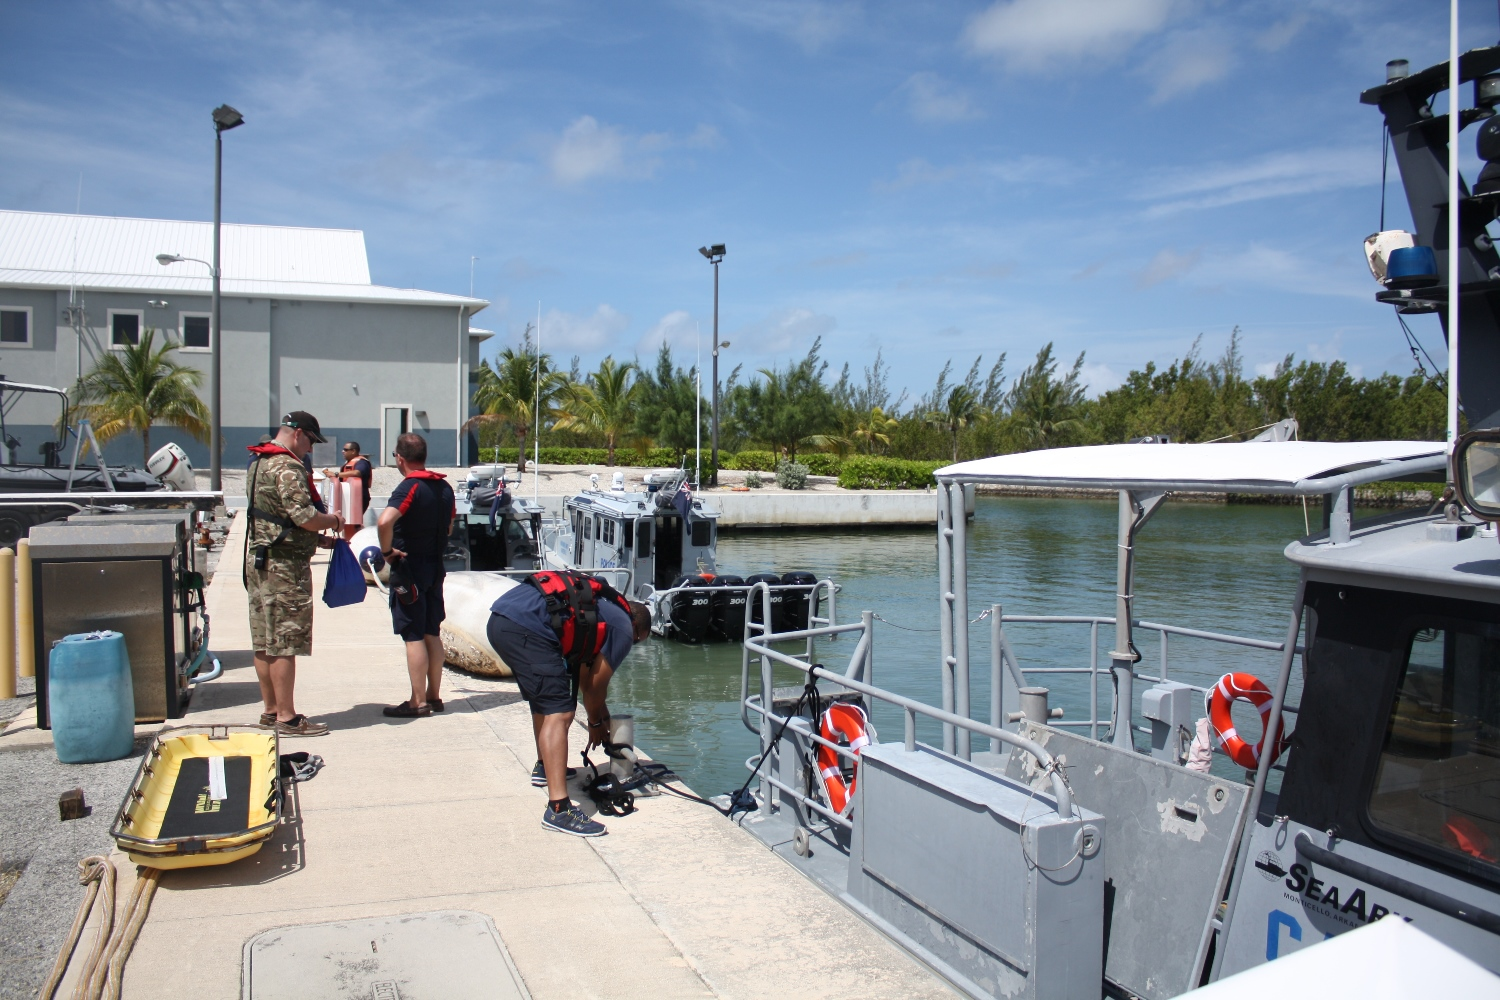 Preparing for an on-the-water training session